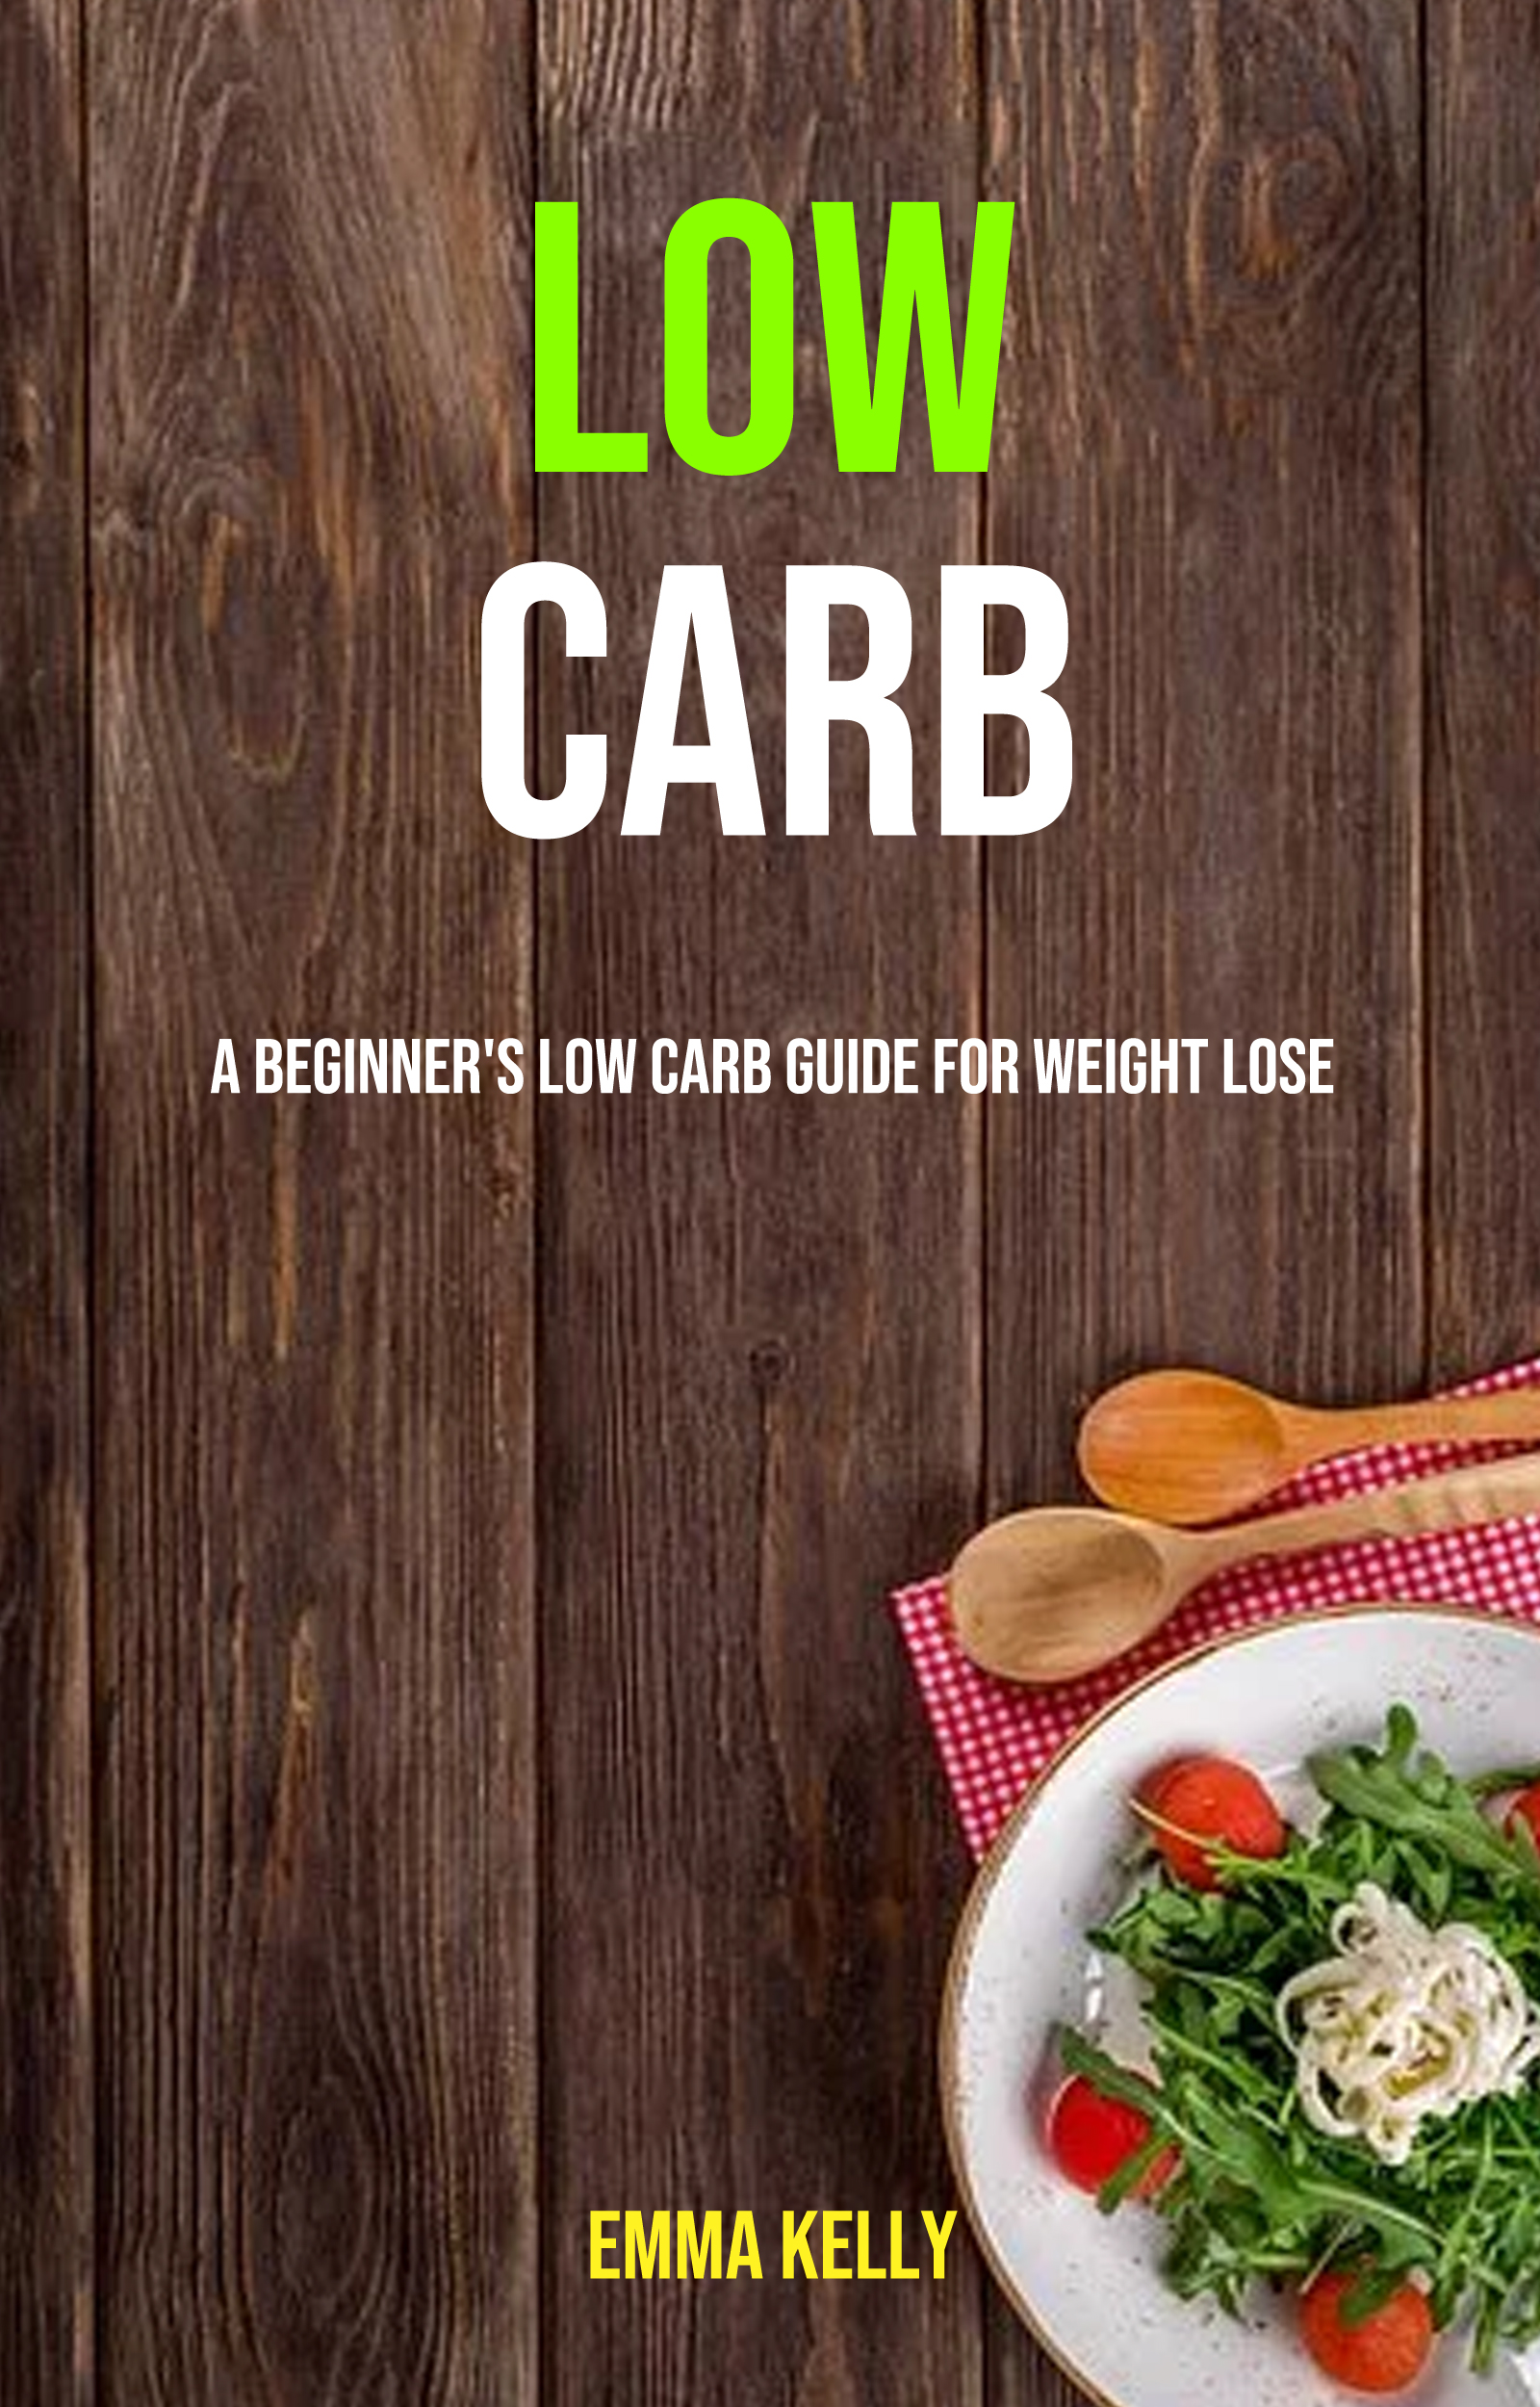 Low carb: a beginner's low carb guide for weight lose